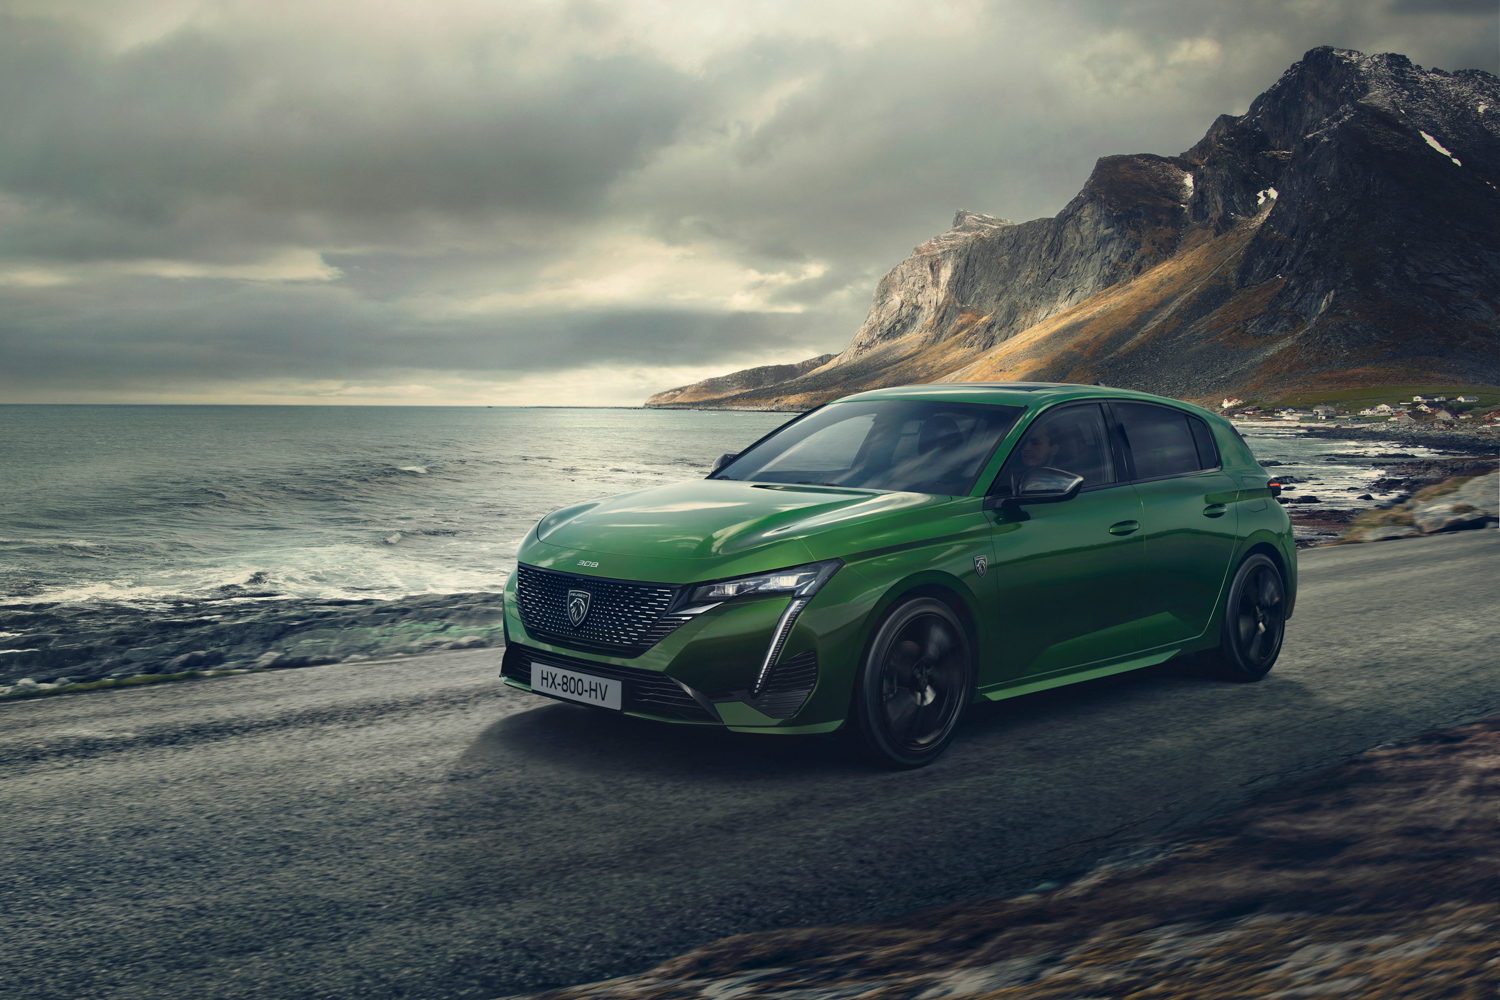 Car News | New Peugeot 308 revealed in full | CompleteCar.ie